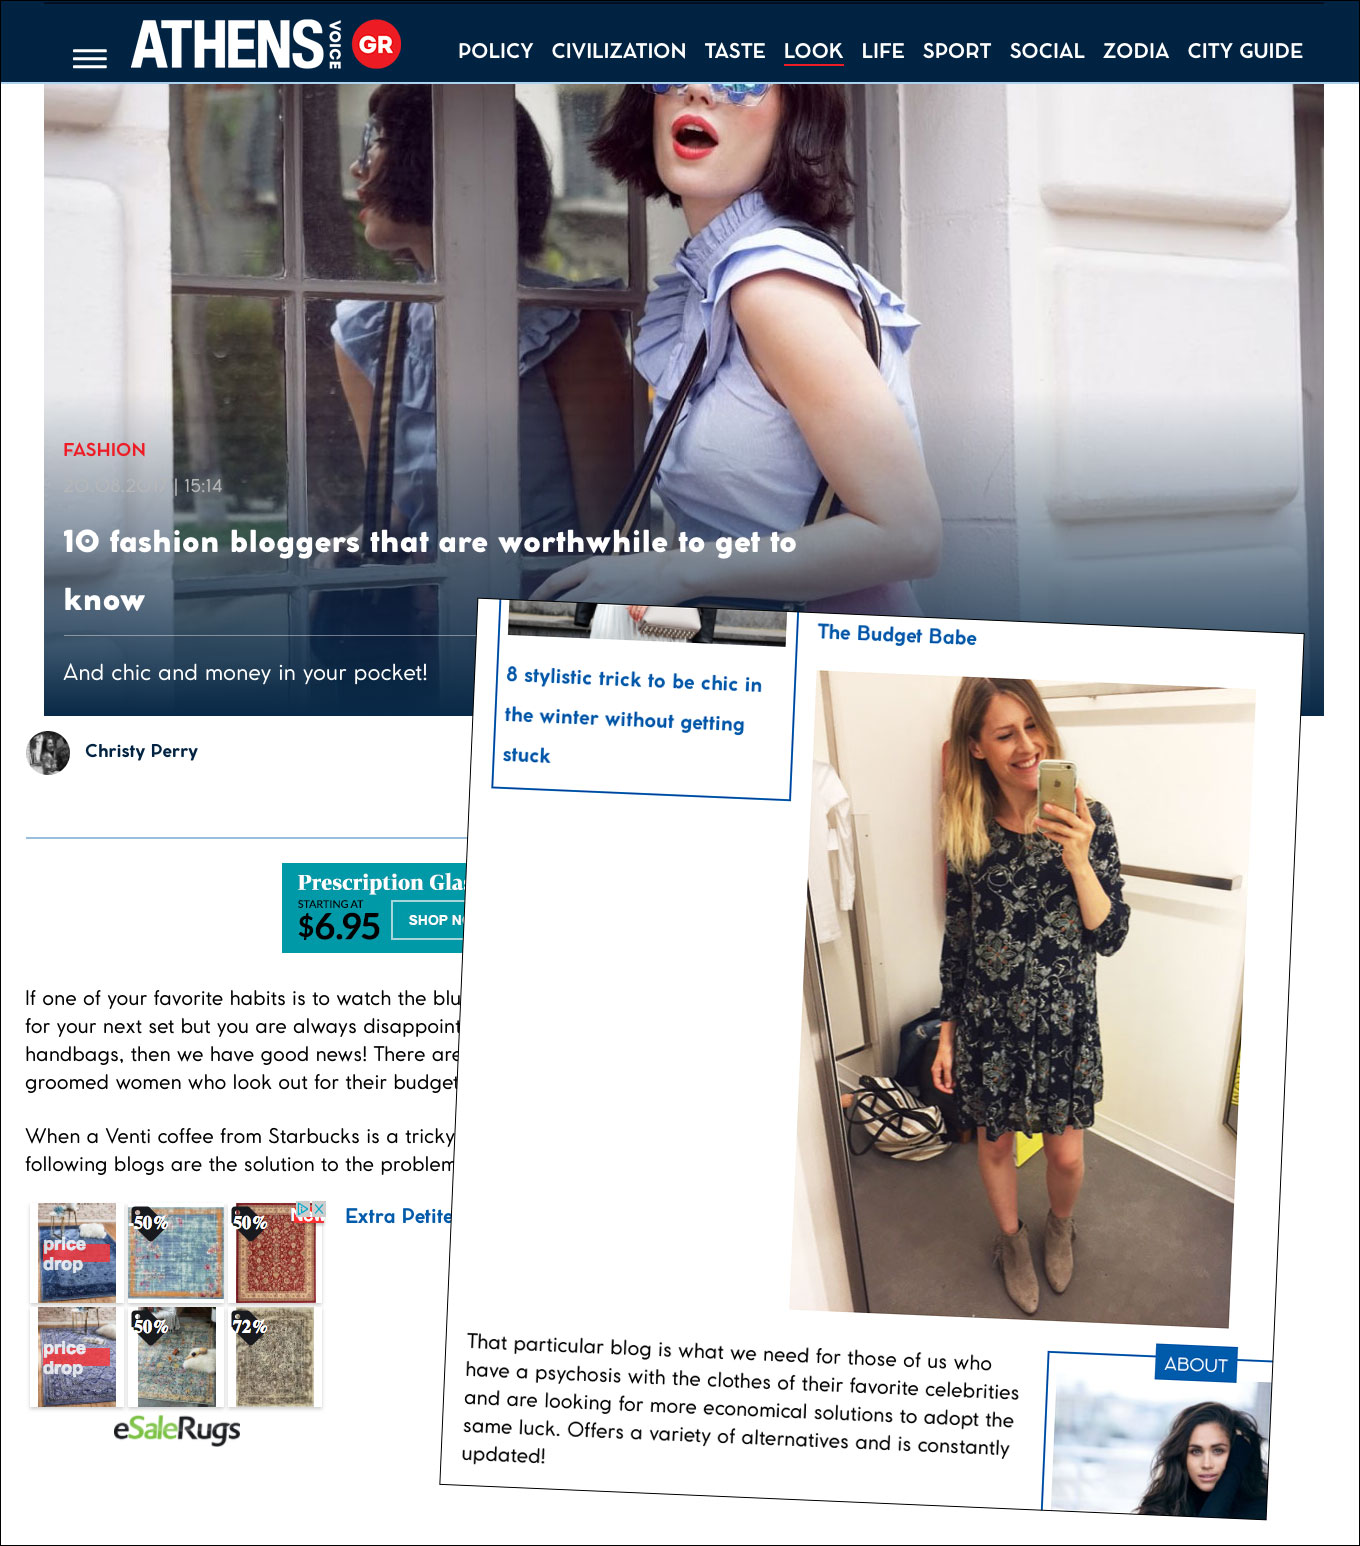 The Athens Voice rounds up the best everyday fashion bloggers on a budget